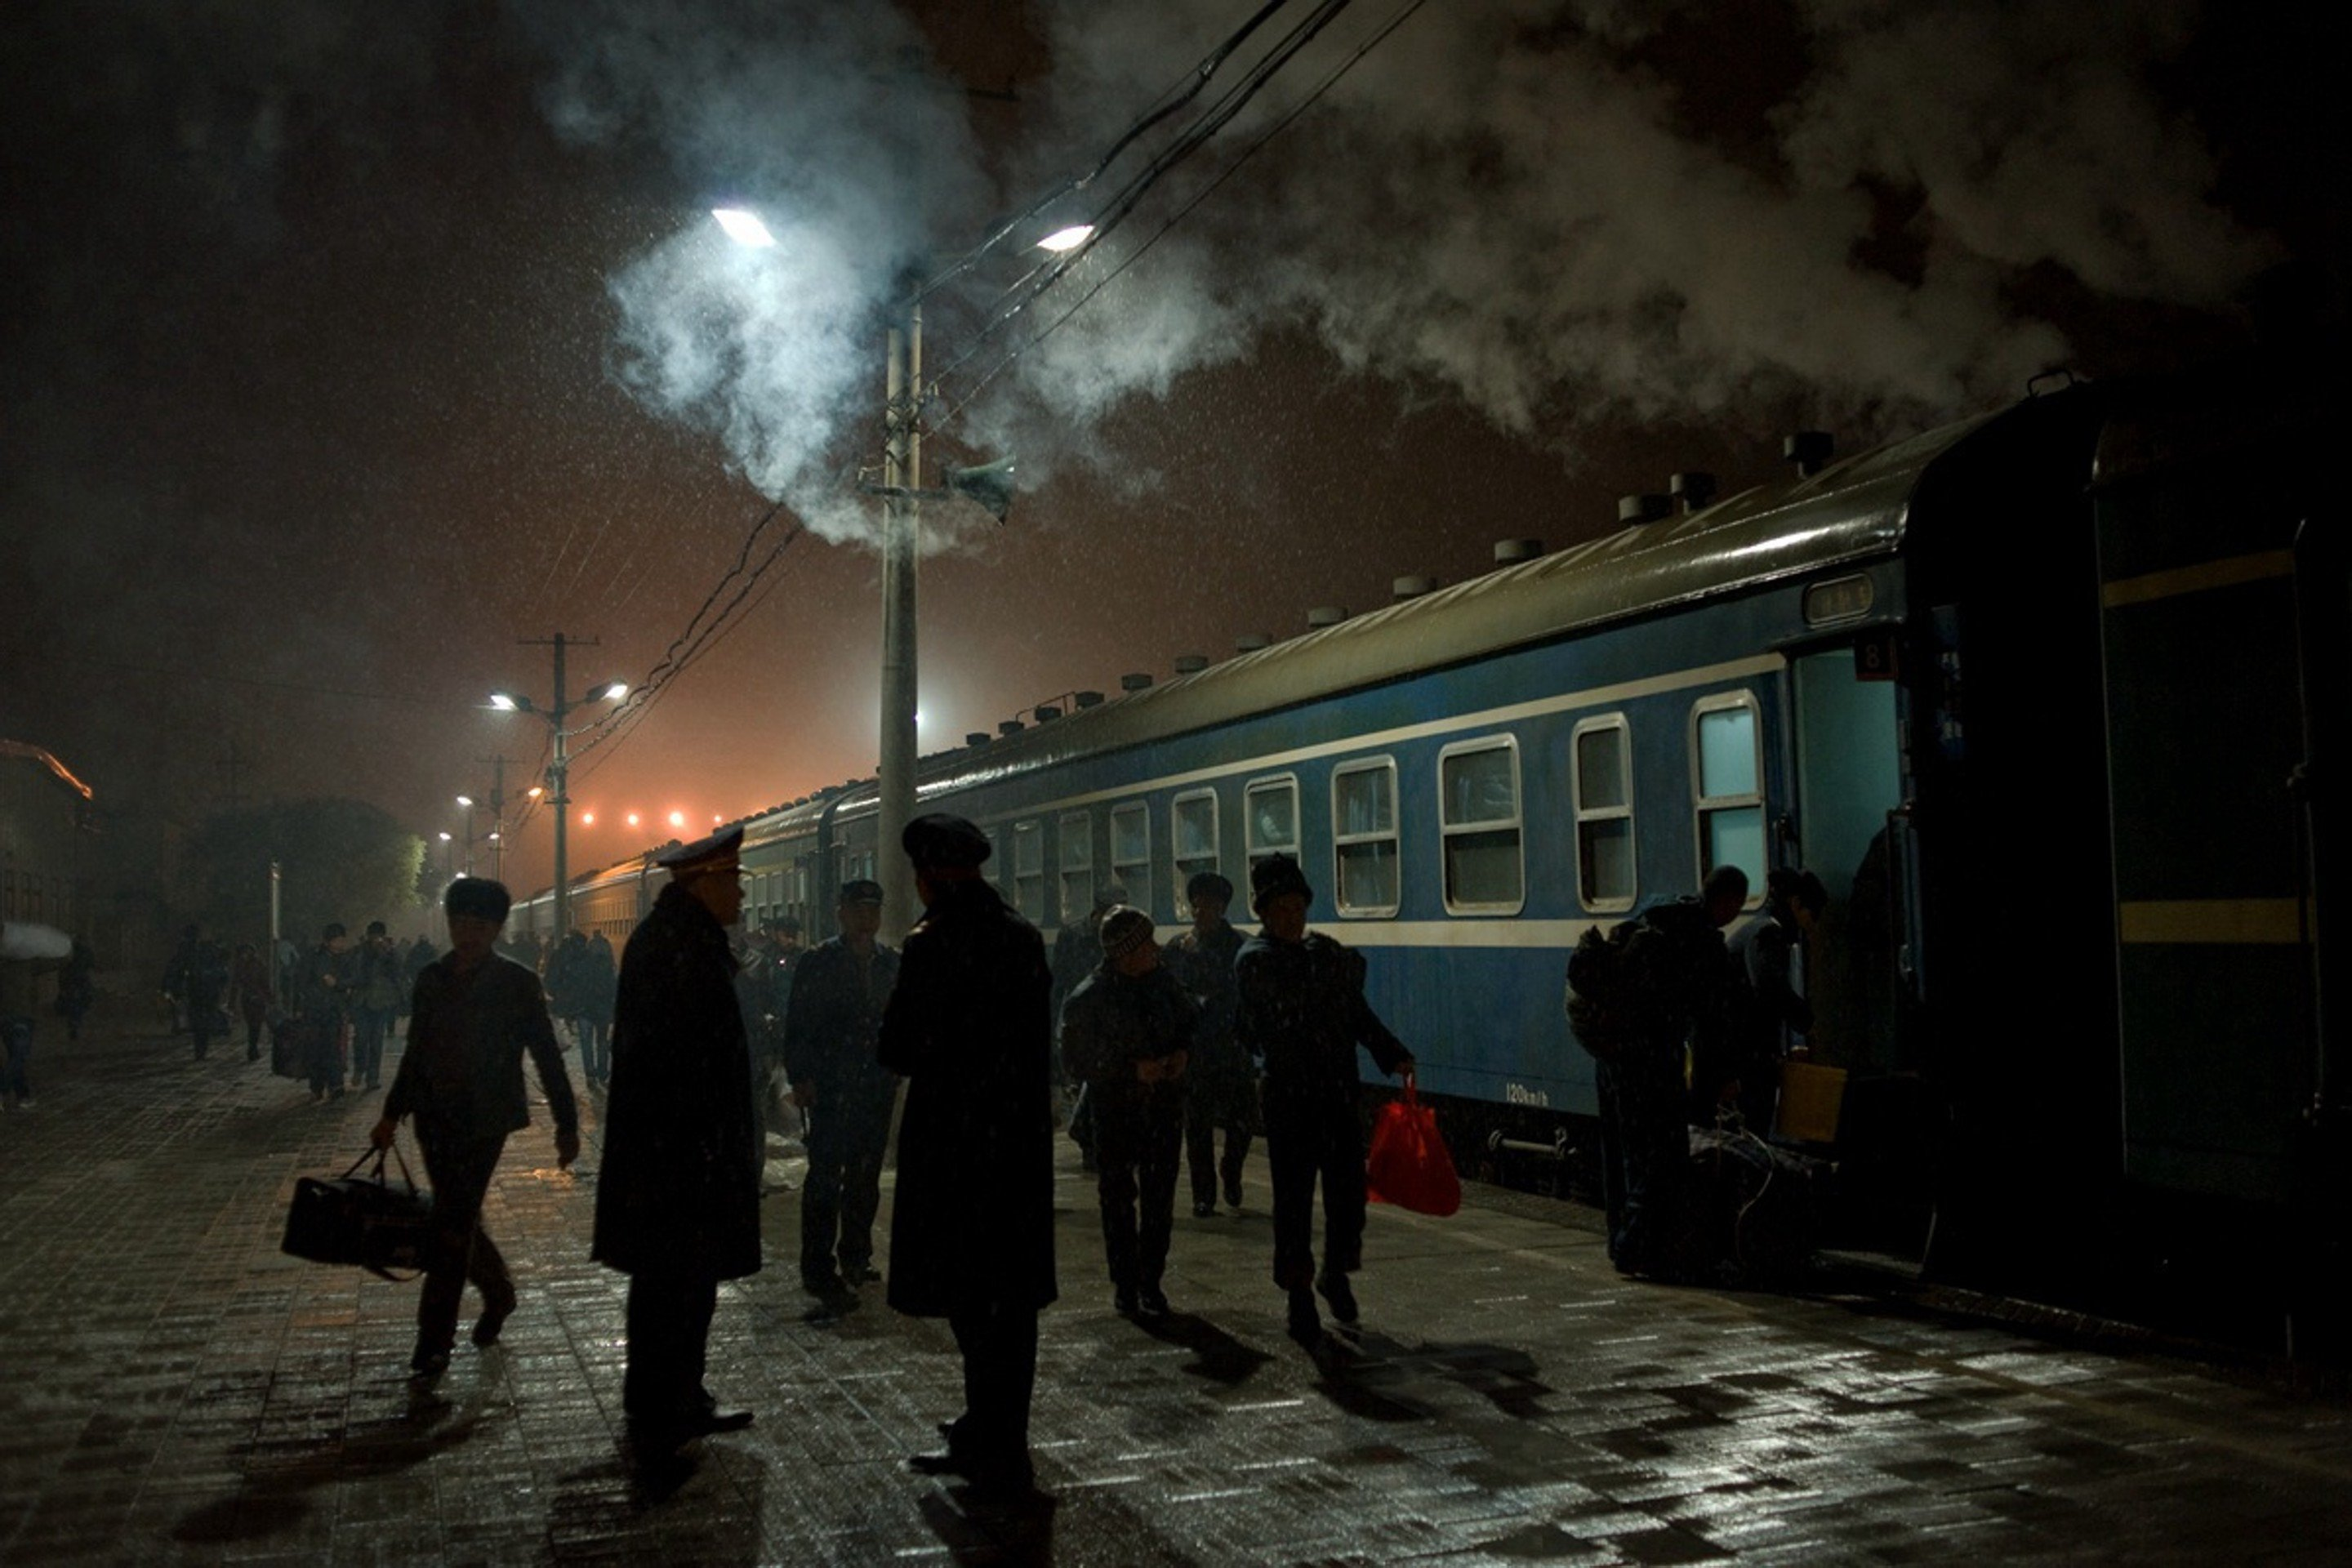 People board train No 7558 (Kashgar to Urumqi) at Kashgar railway station, in the Xinjiang Uygur autonomous region, in November 2013. Photo: Qian Haifeng